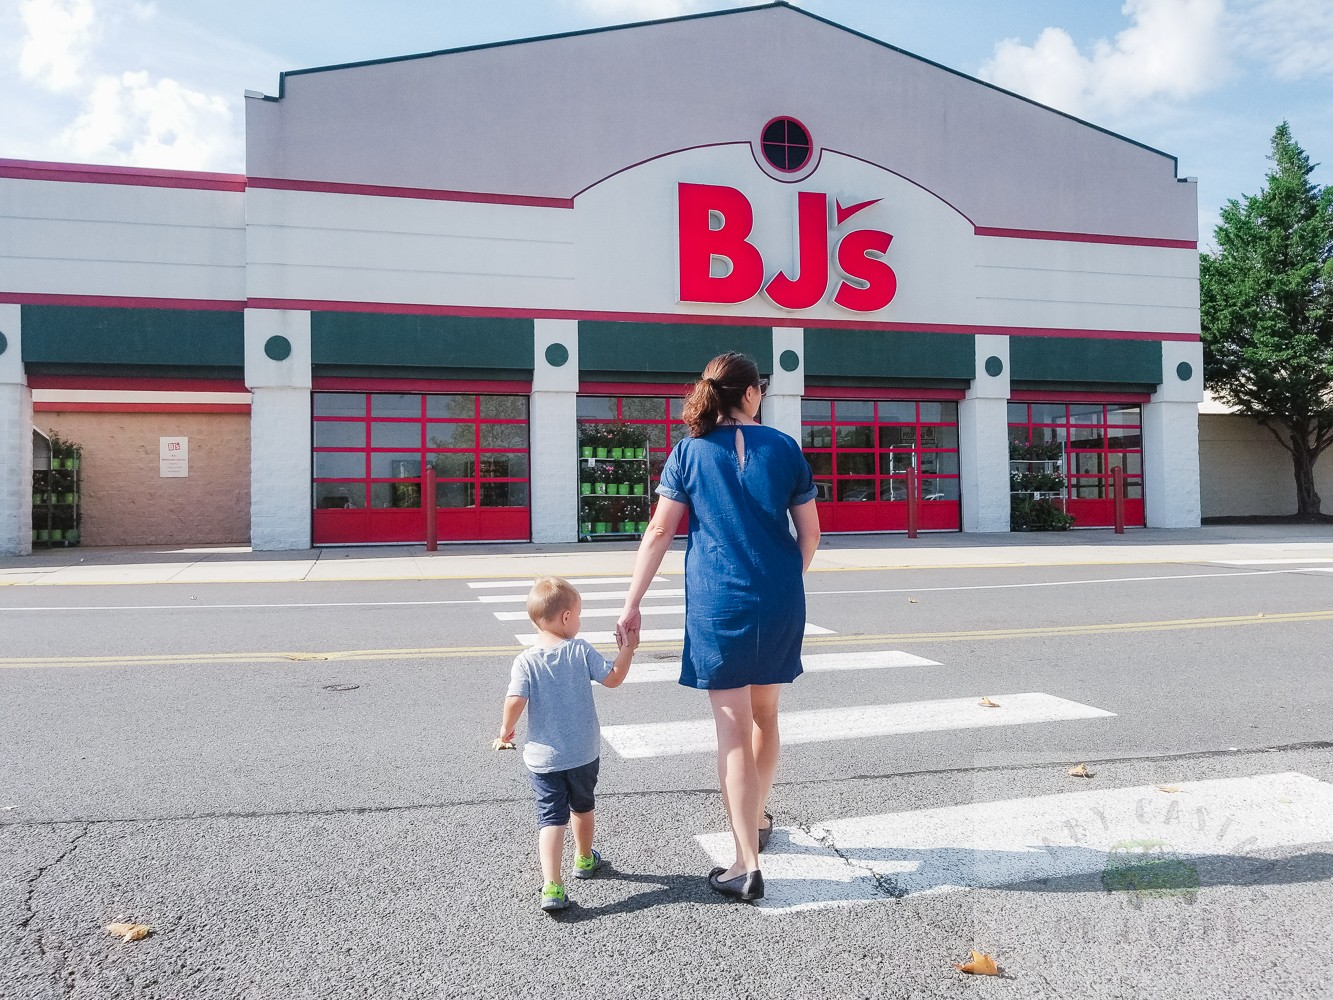 Bjs Wholesale_mom and toddler going to bjs